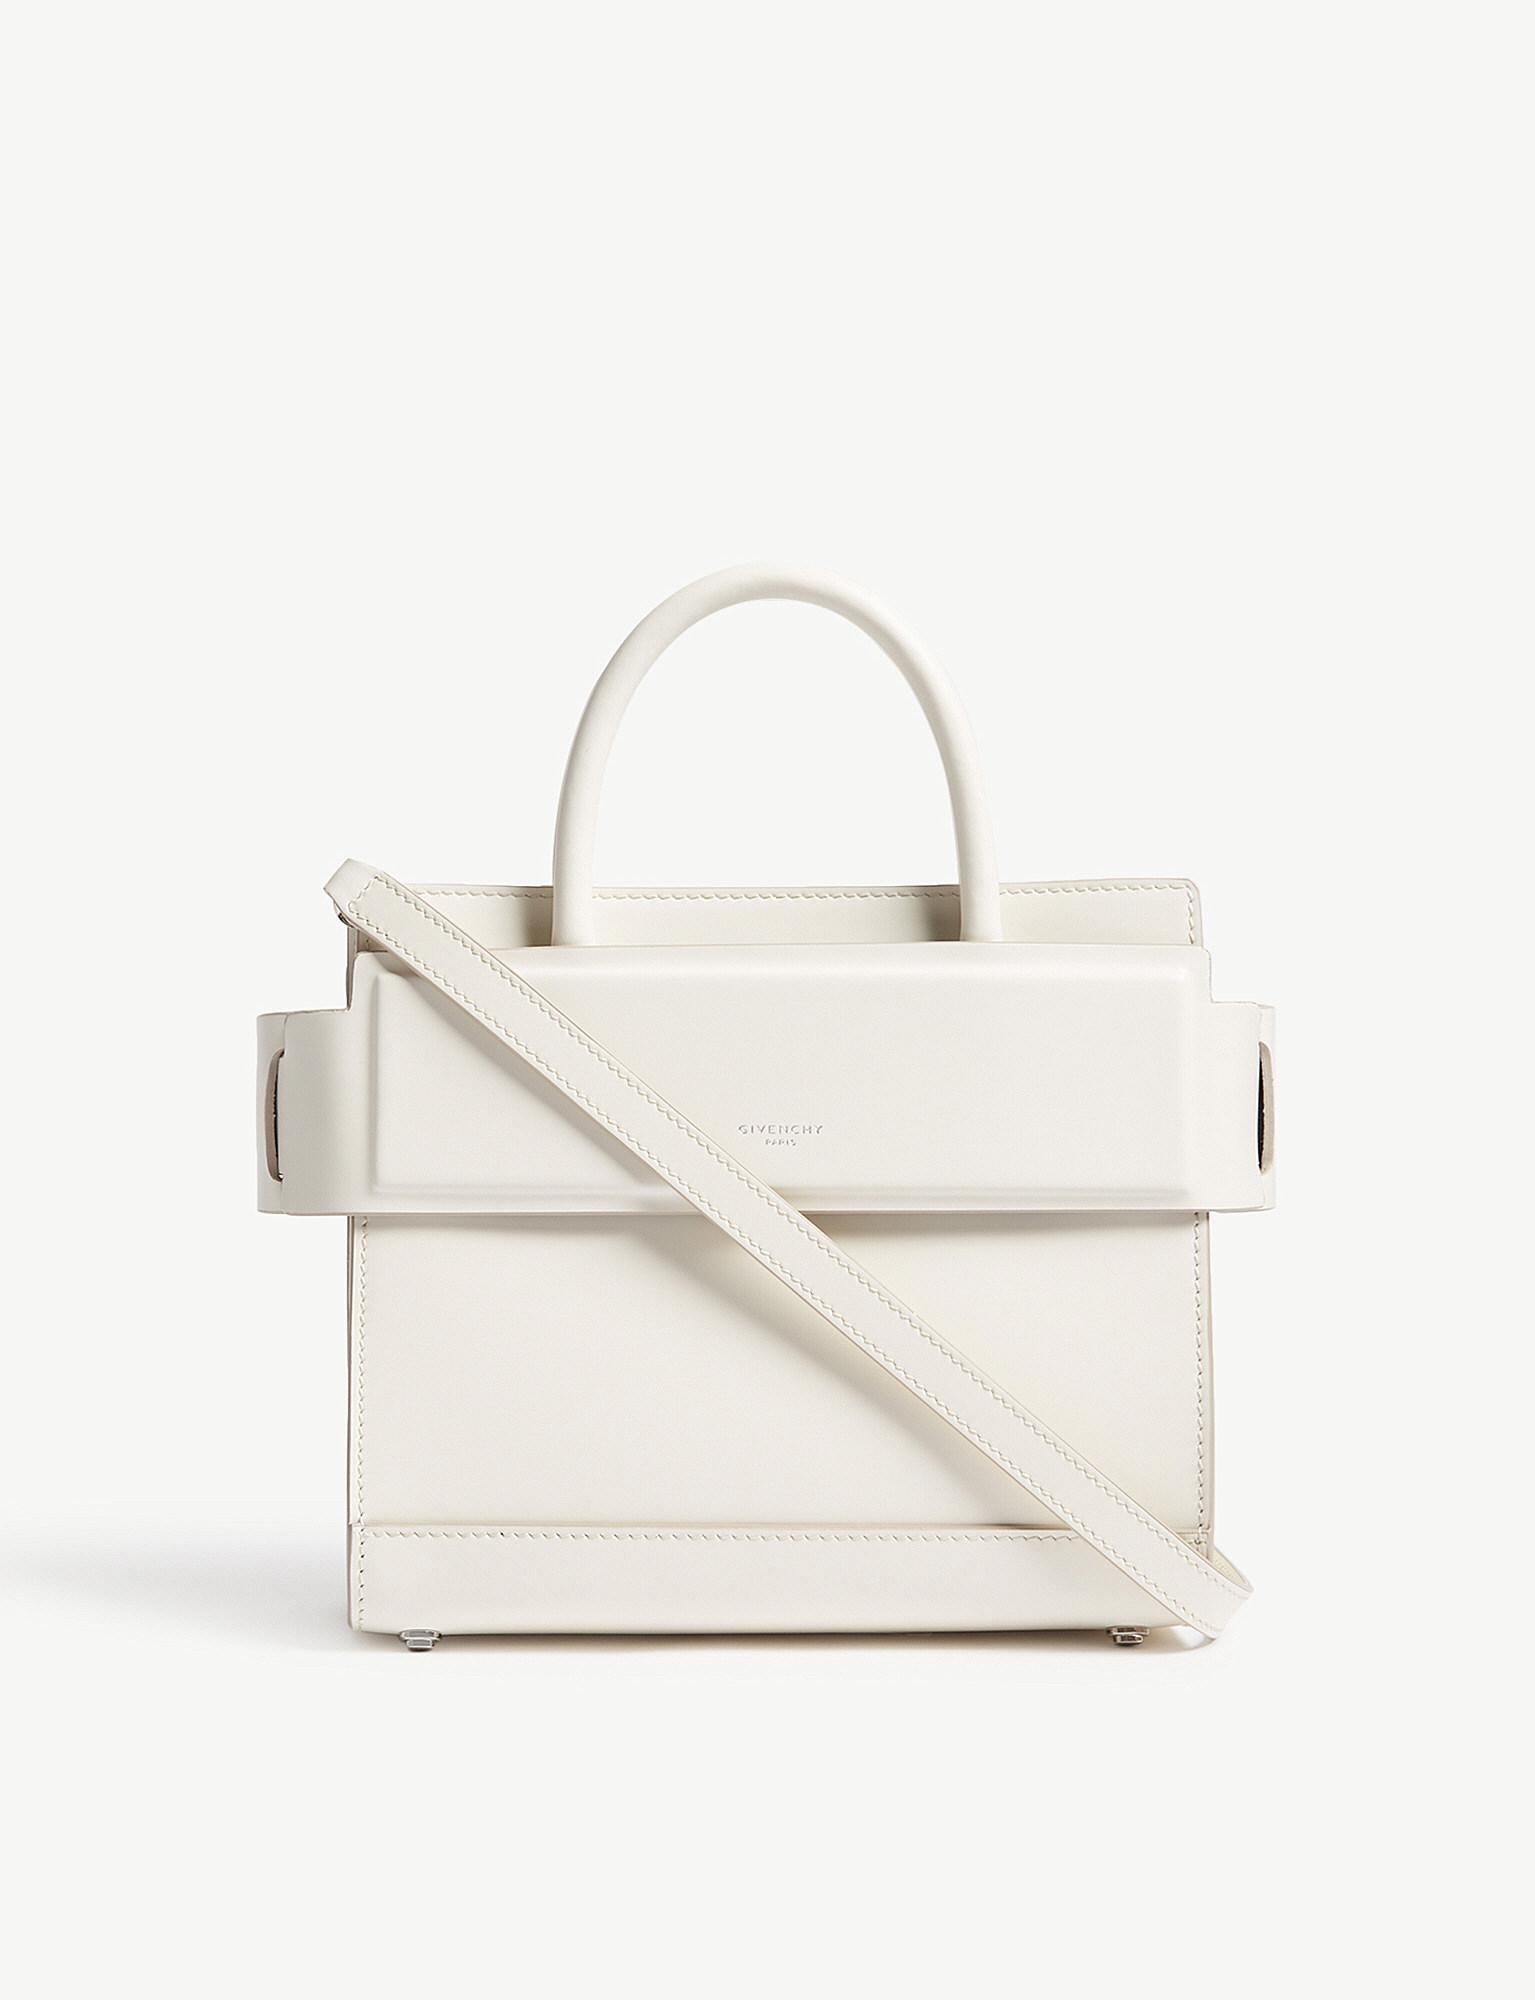 6b43a89cc9 Lyst - Givenchy Horizon Mini Leather Cross-body Bag in White